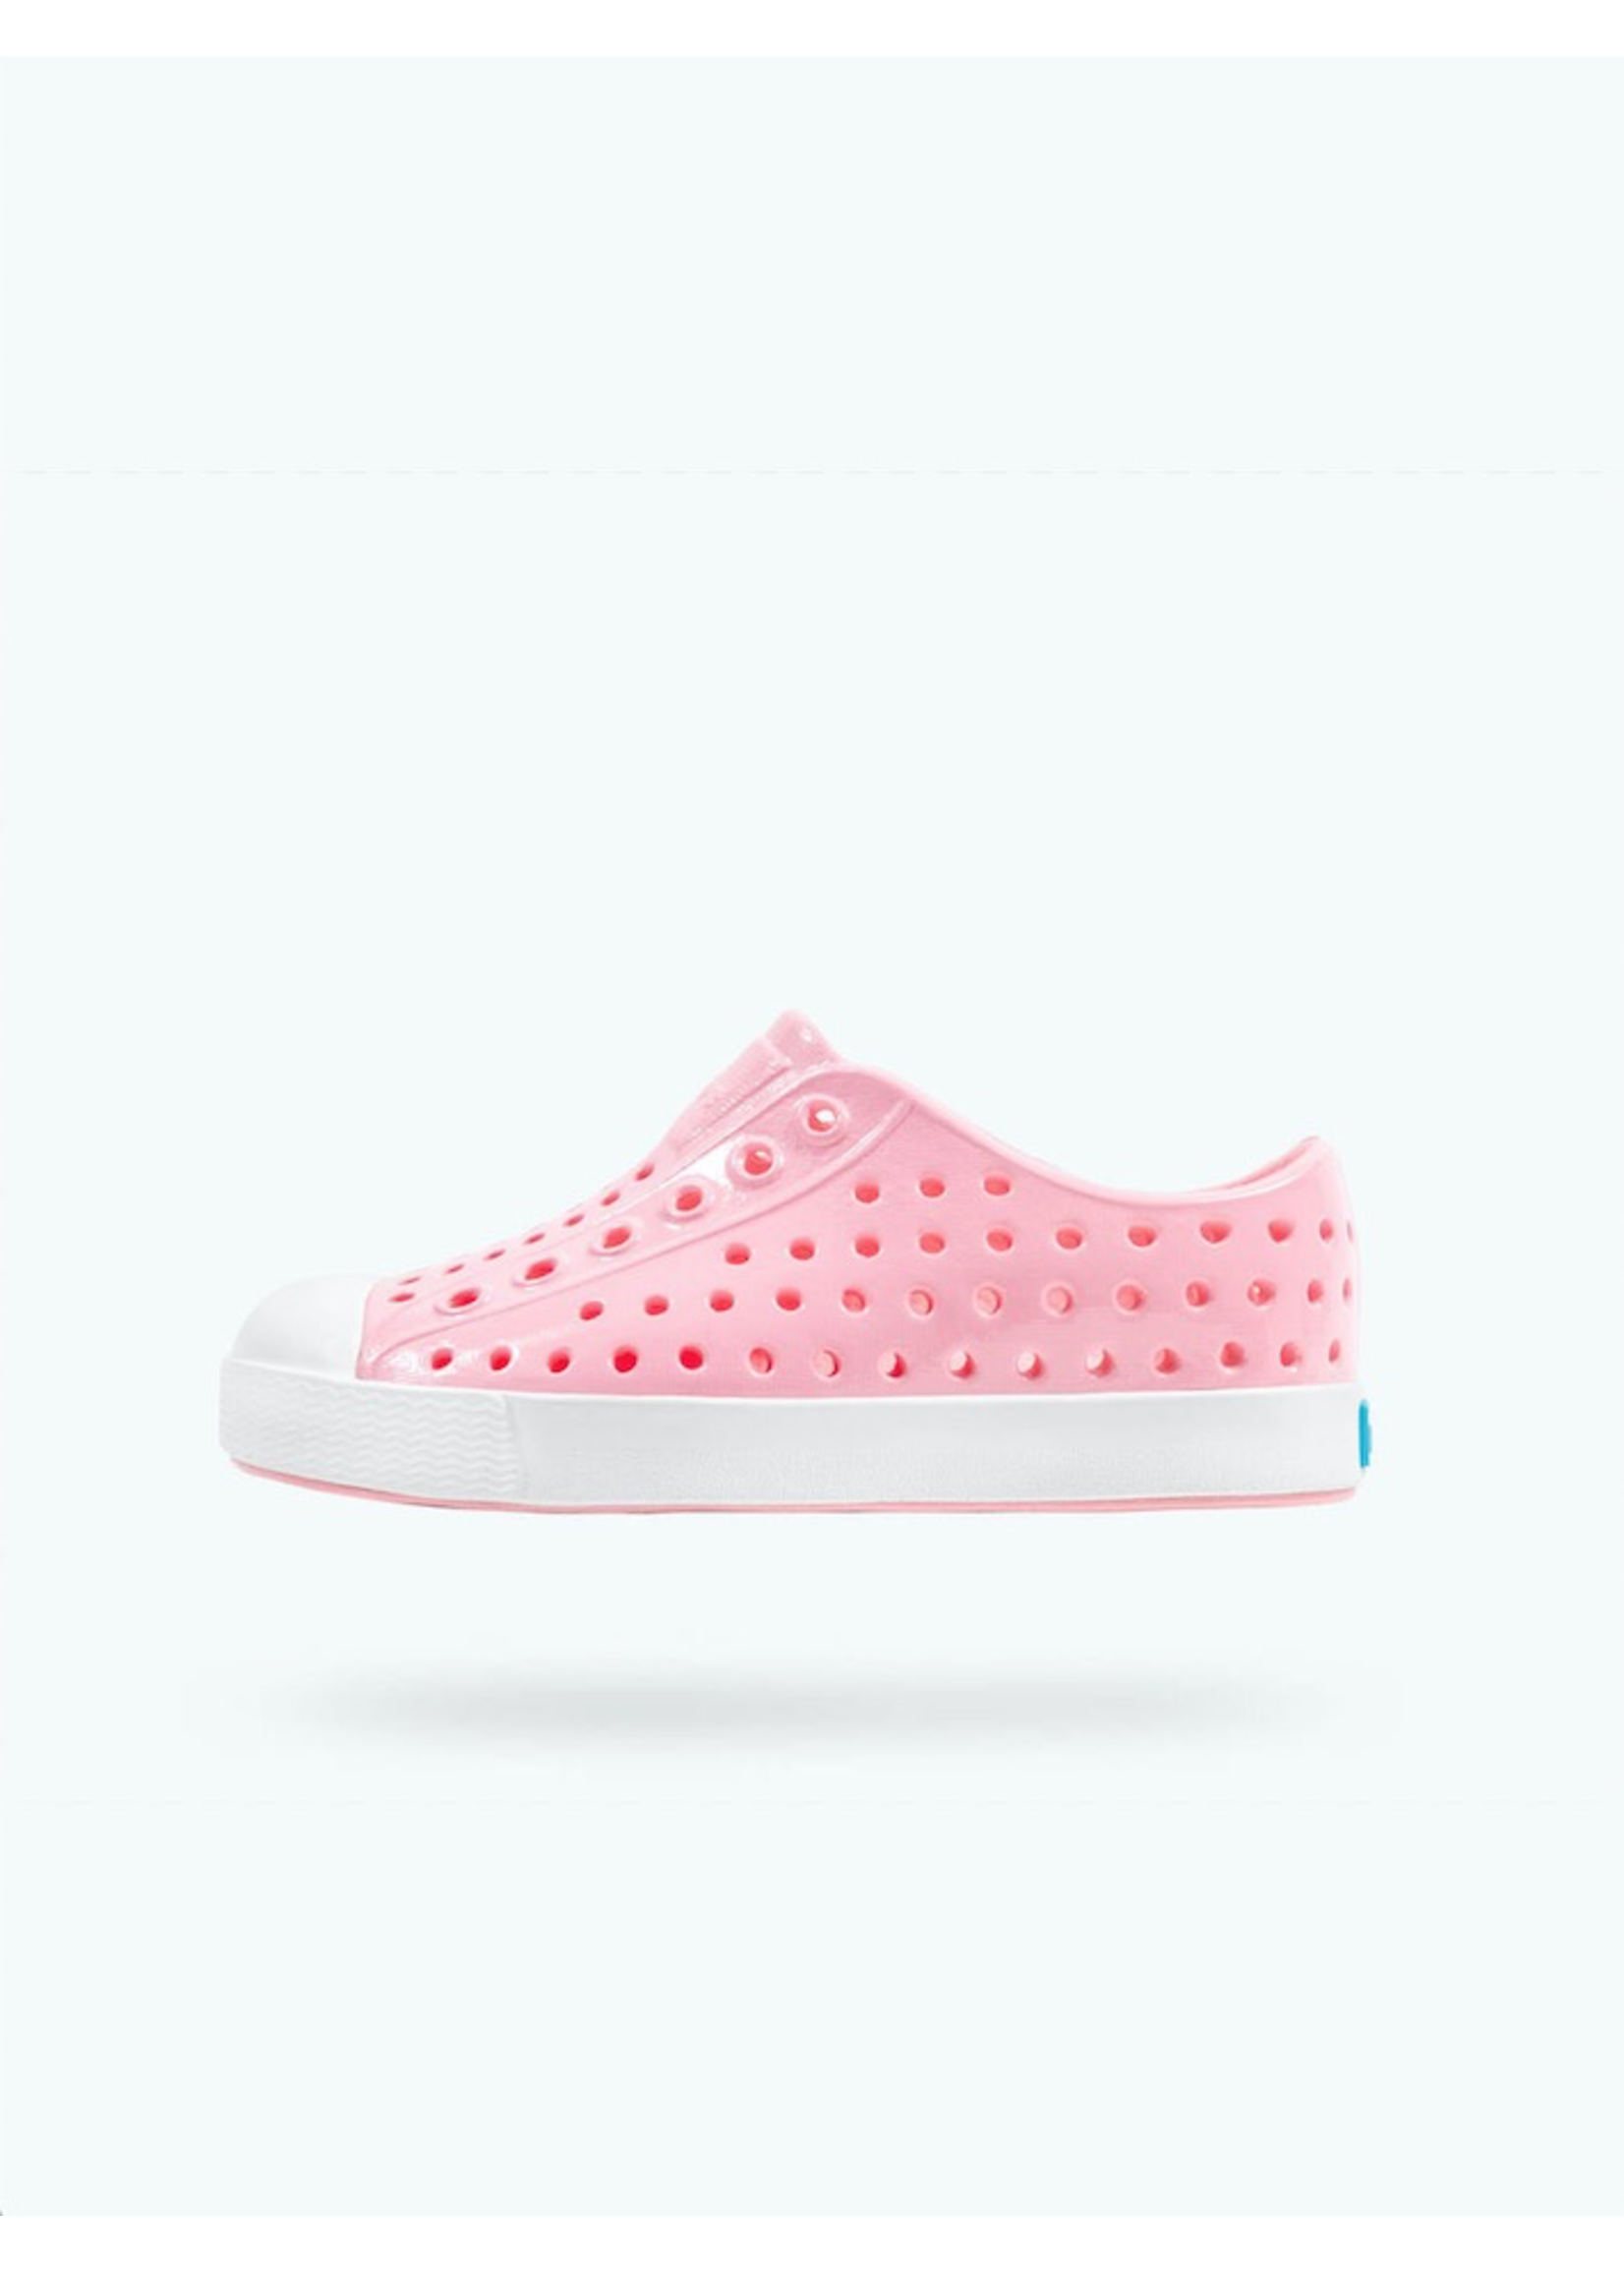 Native Shoes Native Shoes, Jefferson Gloss Child in Princess Pink